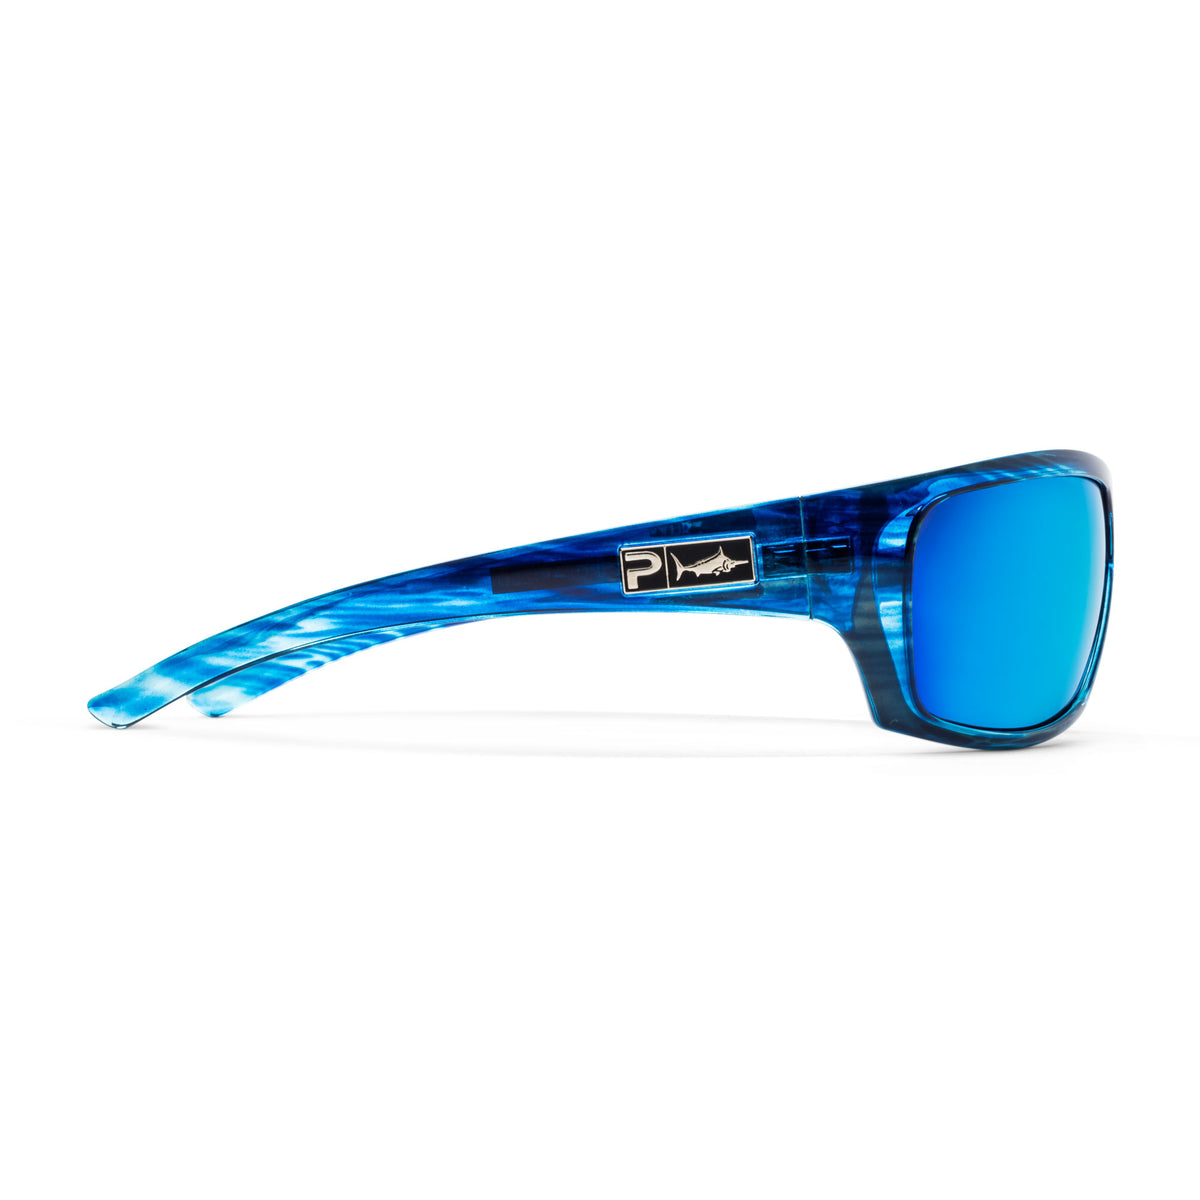 The Mack - Polarized Polycarbonate Lens Big Image - 3